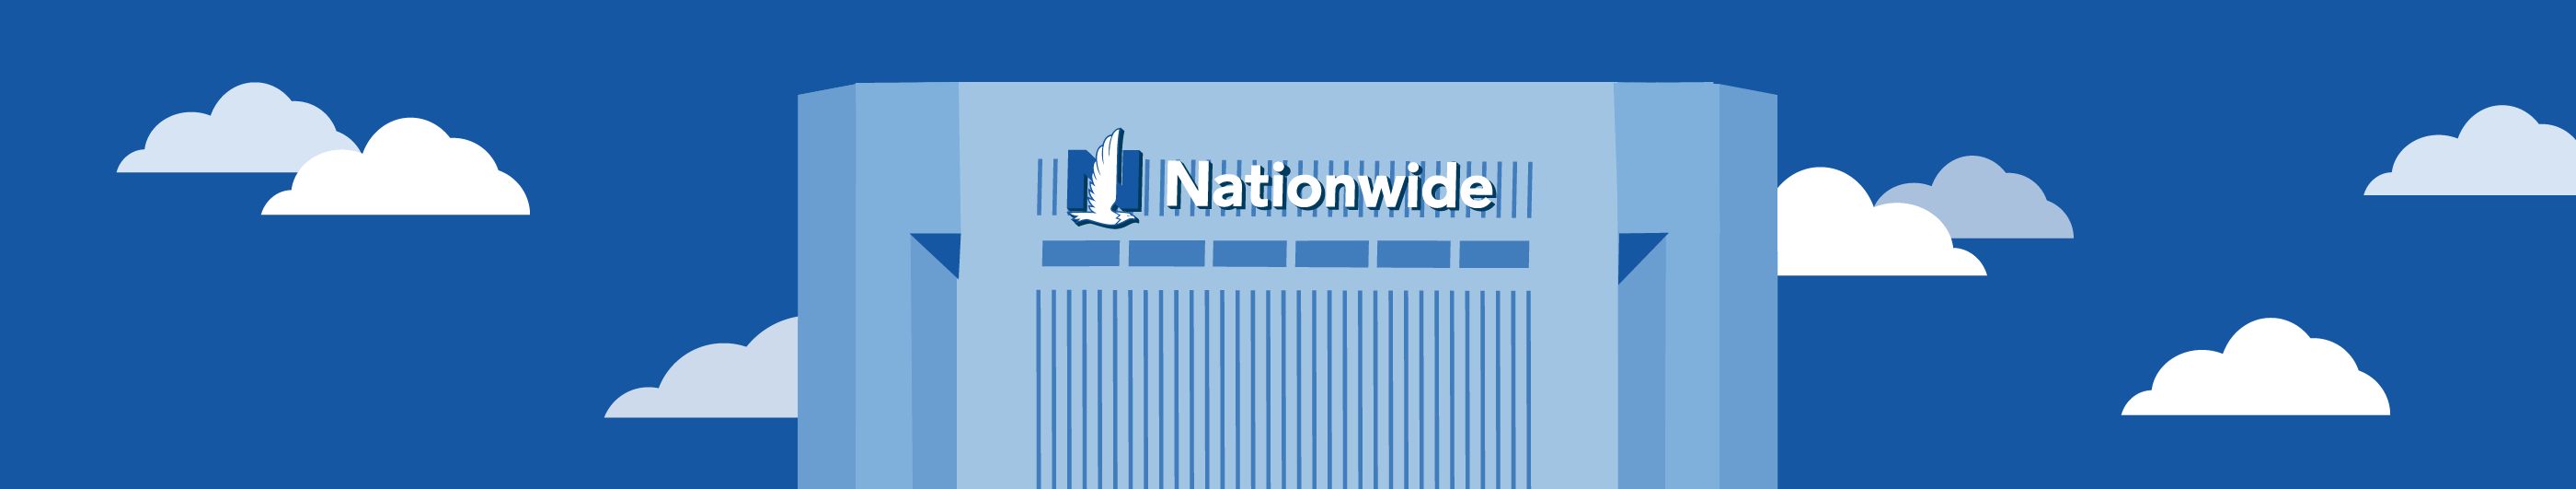 illustration of Nationwide building with white clouds and blue background